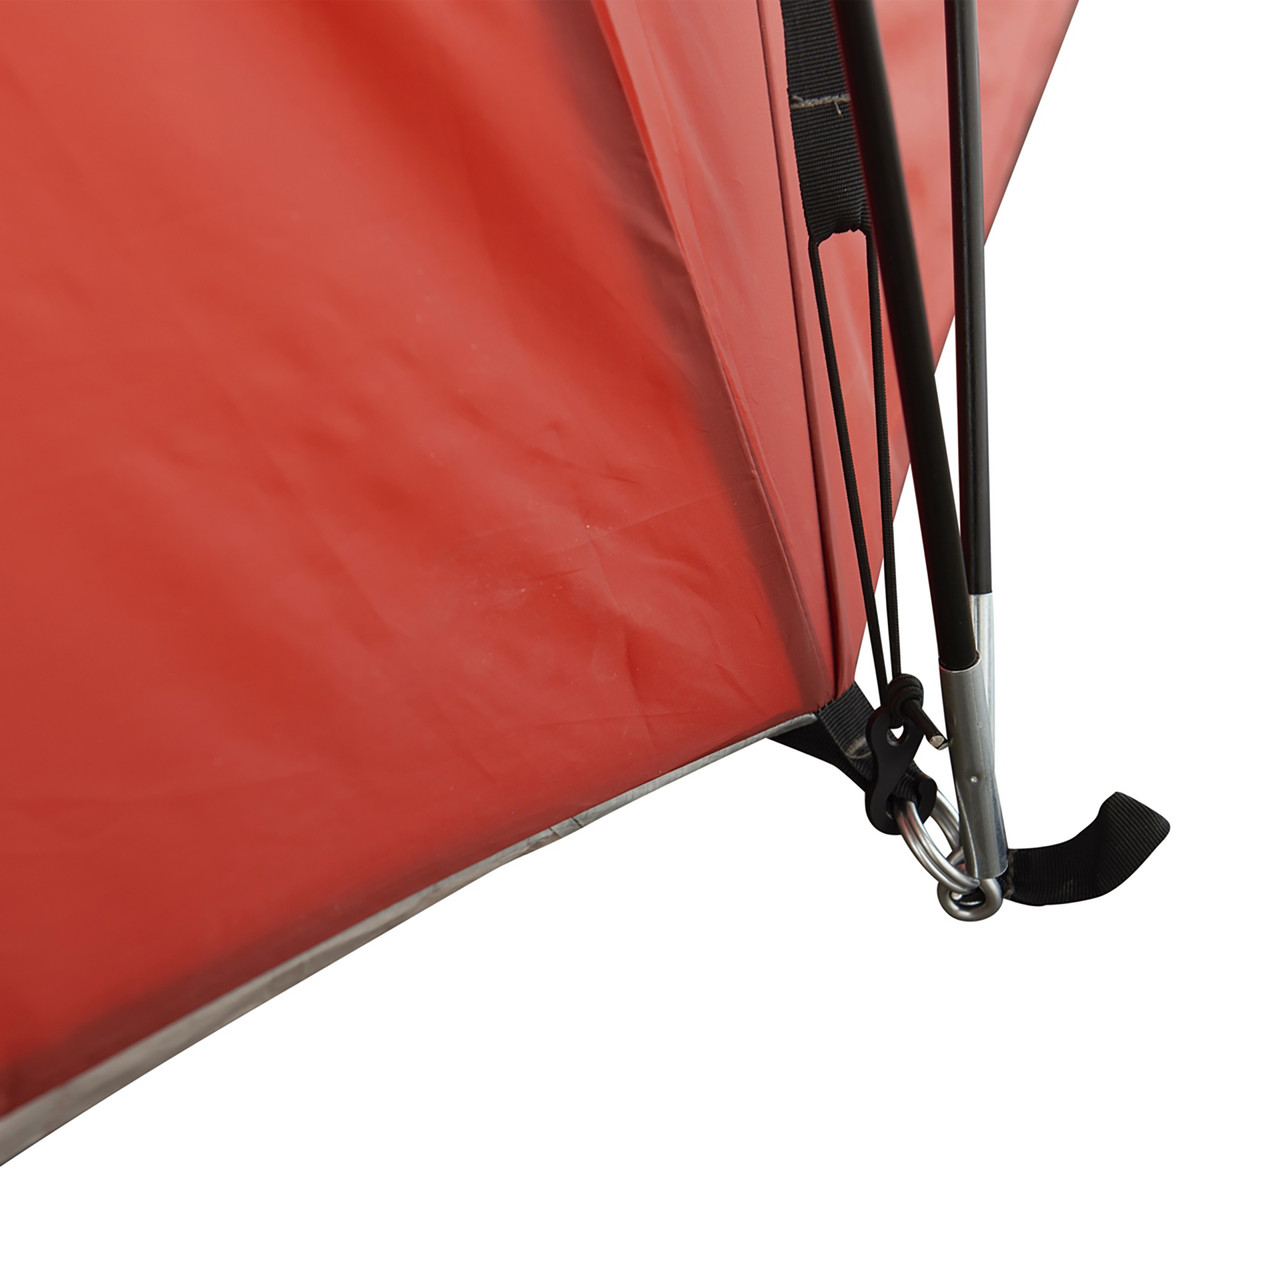 Close up of Wenzel Bristlecone 8 Person Dome Tent, showing end of tent pole inserted into attachment point at lower corner of tent